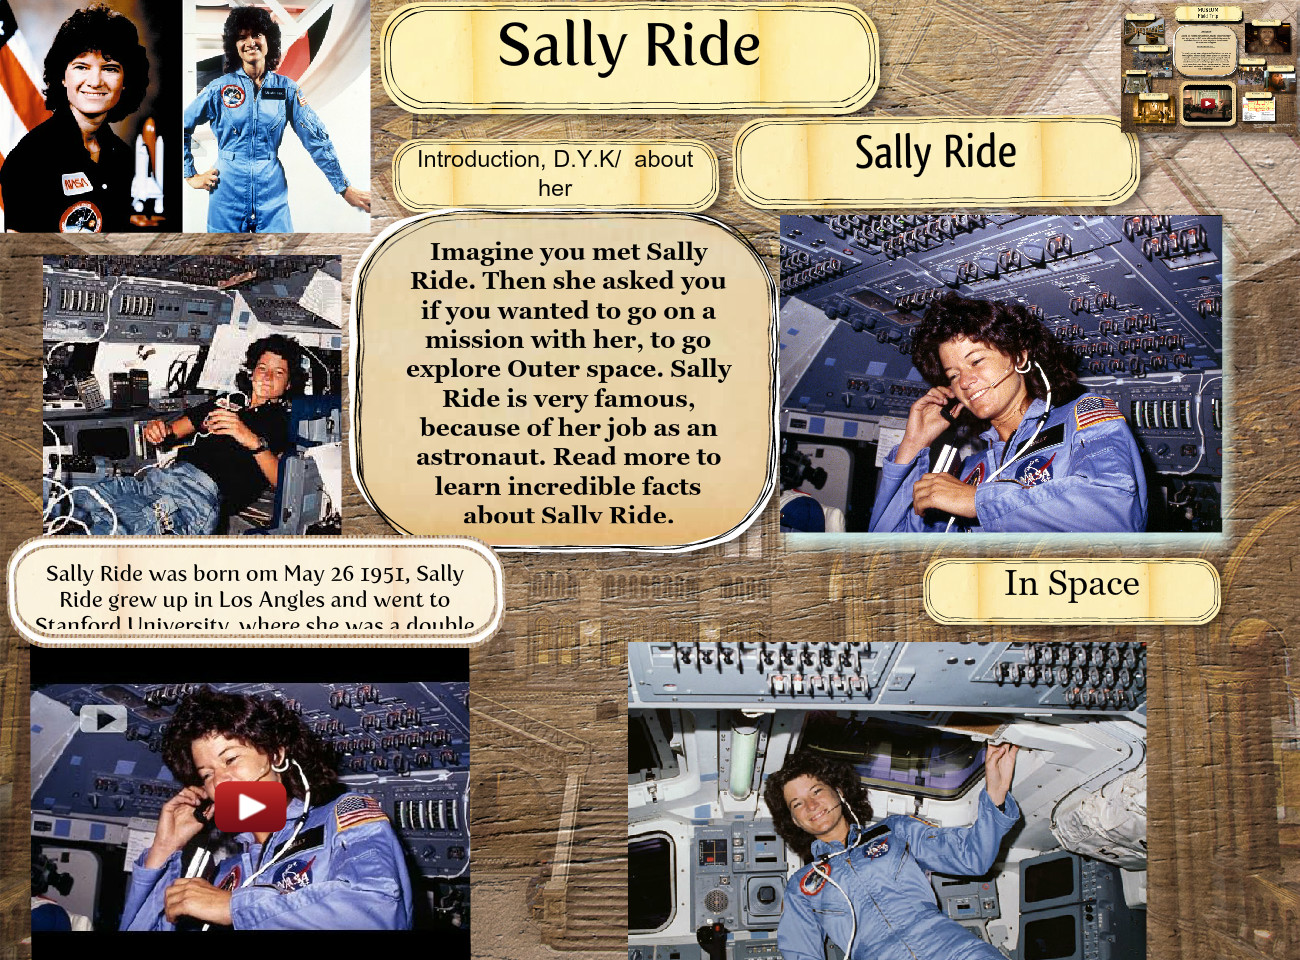 [2015] giselle iniguez: Sally Ride